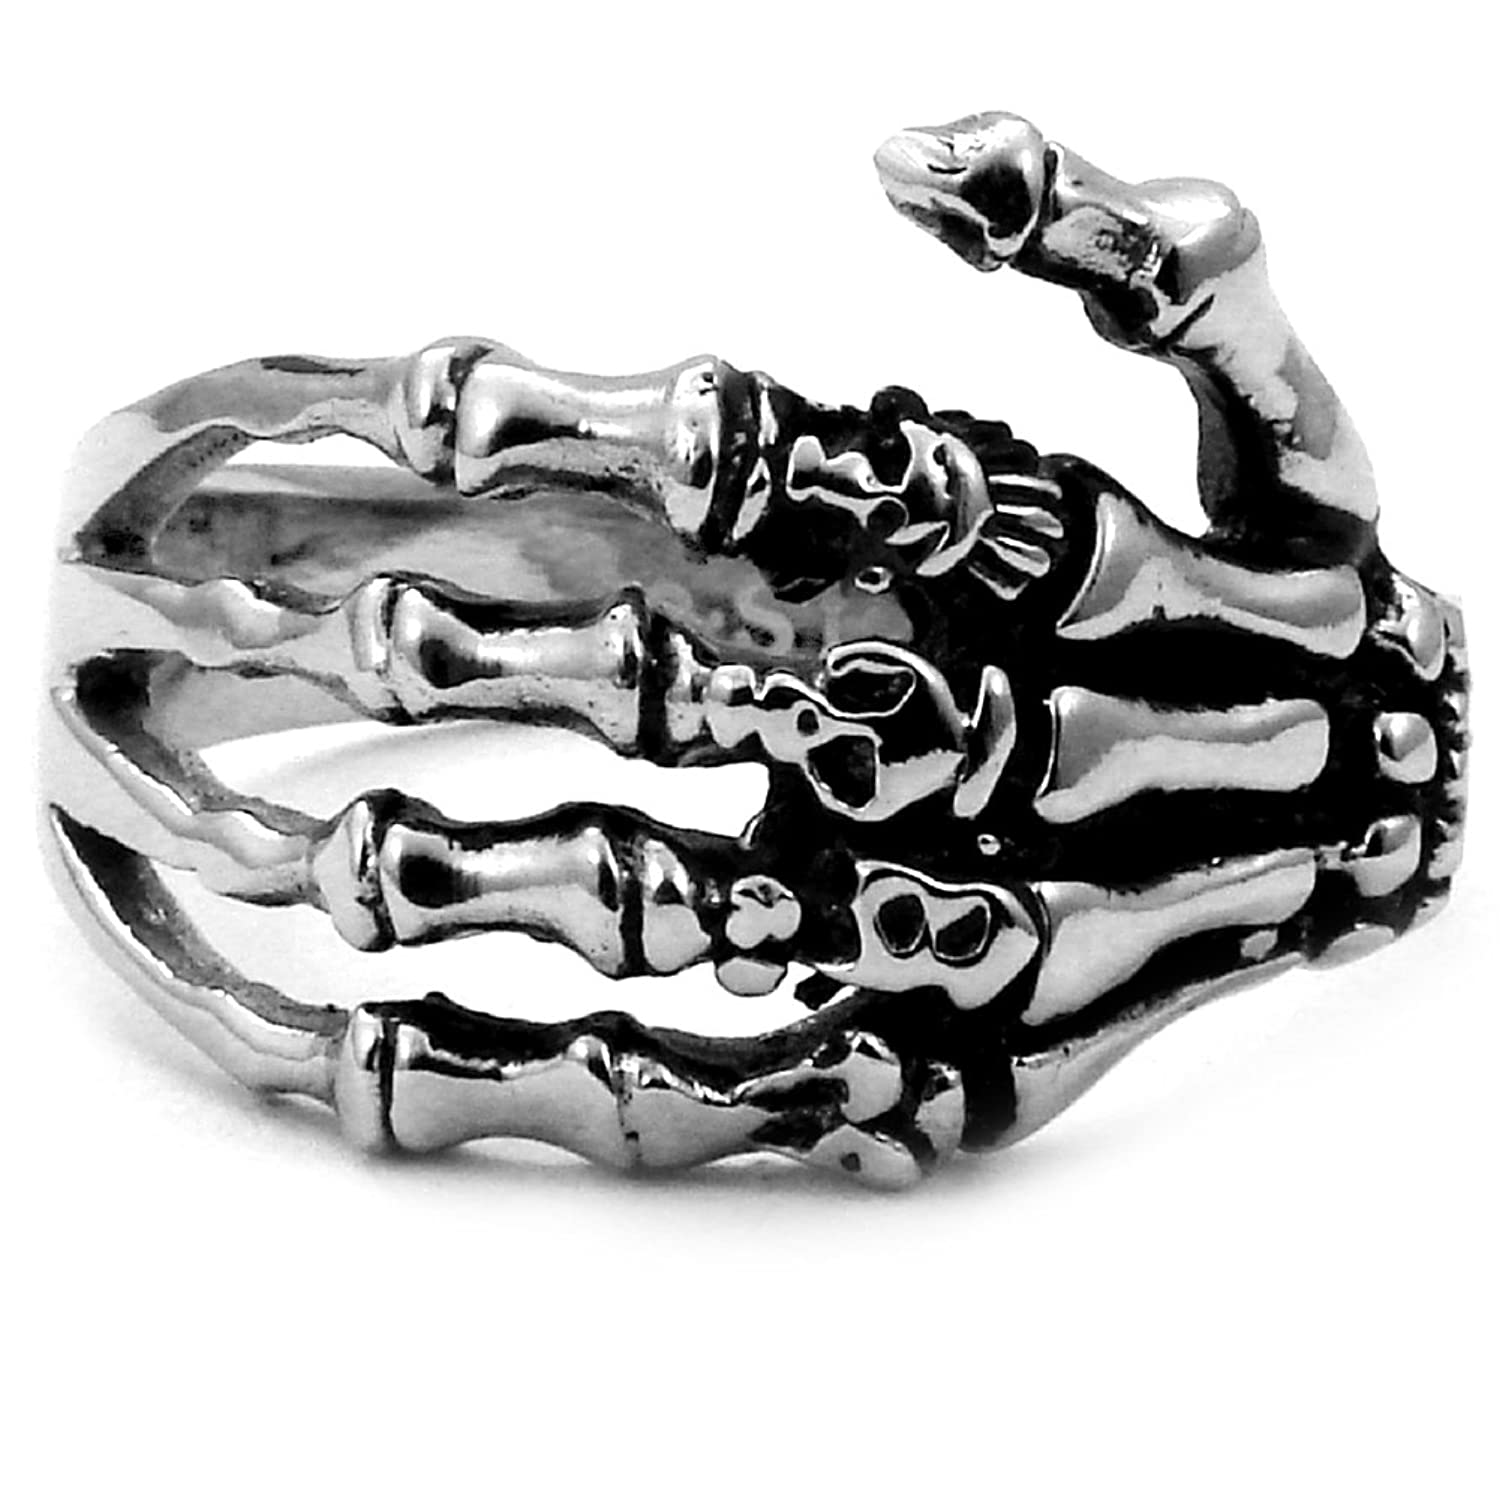 item men rings finger punk accessories from ring jewelry in skeleton for women bone aliexpress com hand steel stainless skull on gift vintage